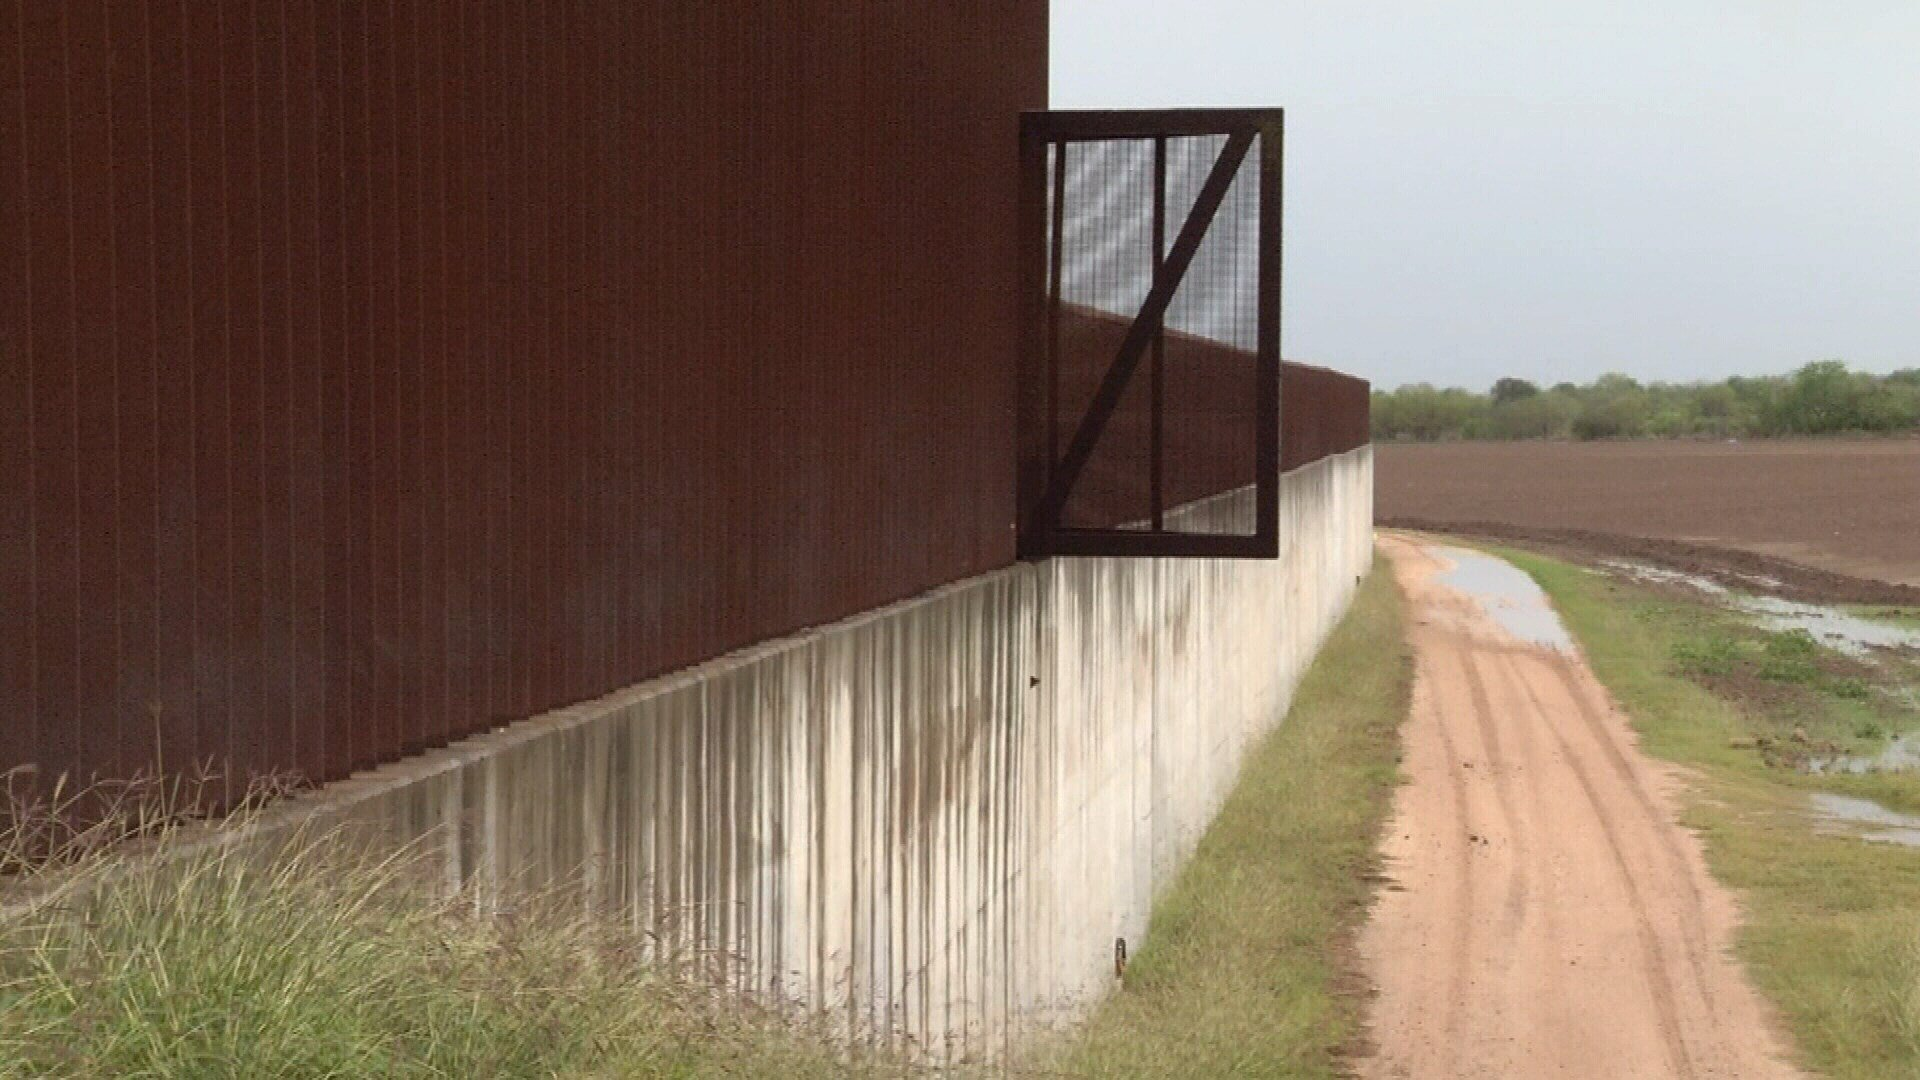 The border wall in Progreso has openings to allow landowners to access private property, and ends a few miles out from the checkpoint.